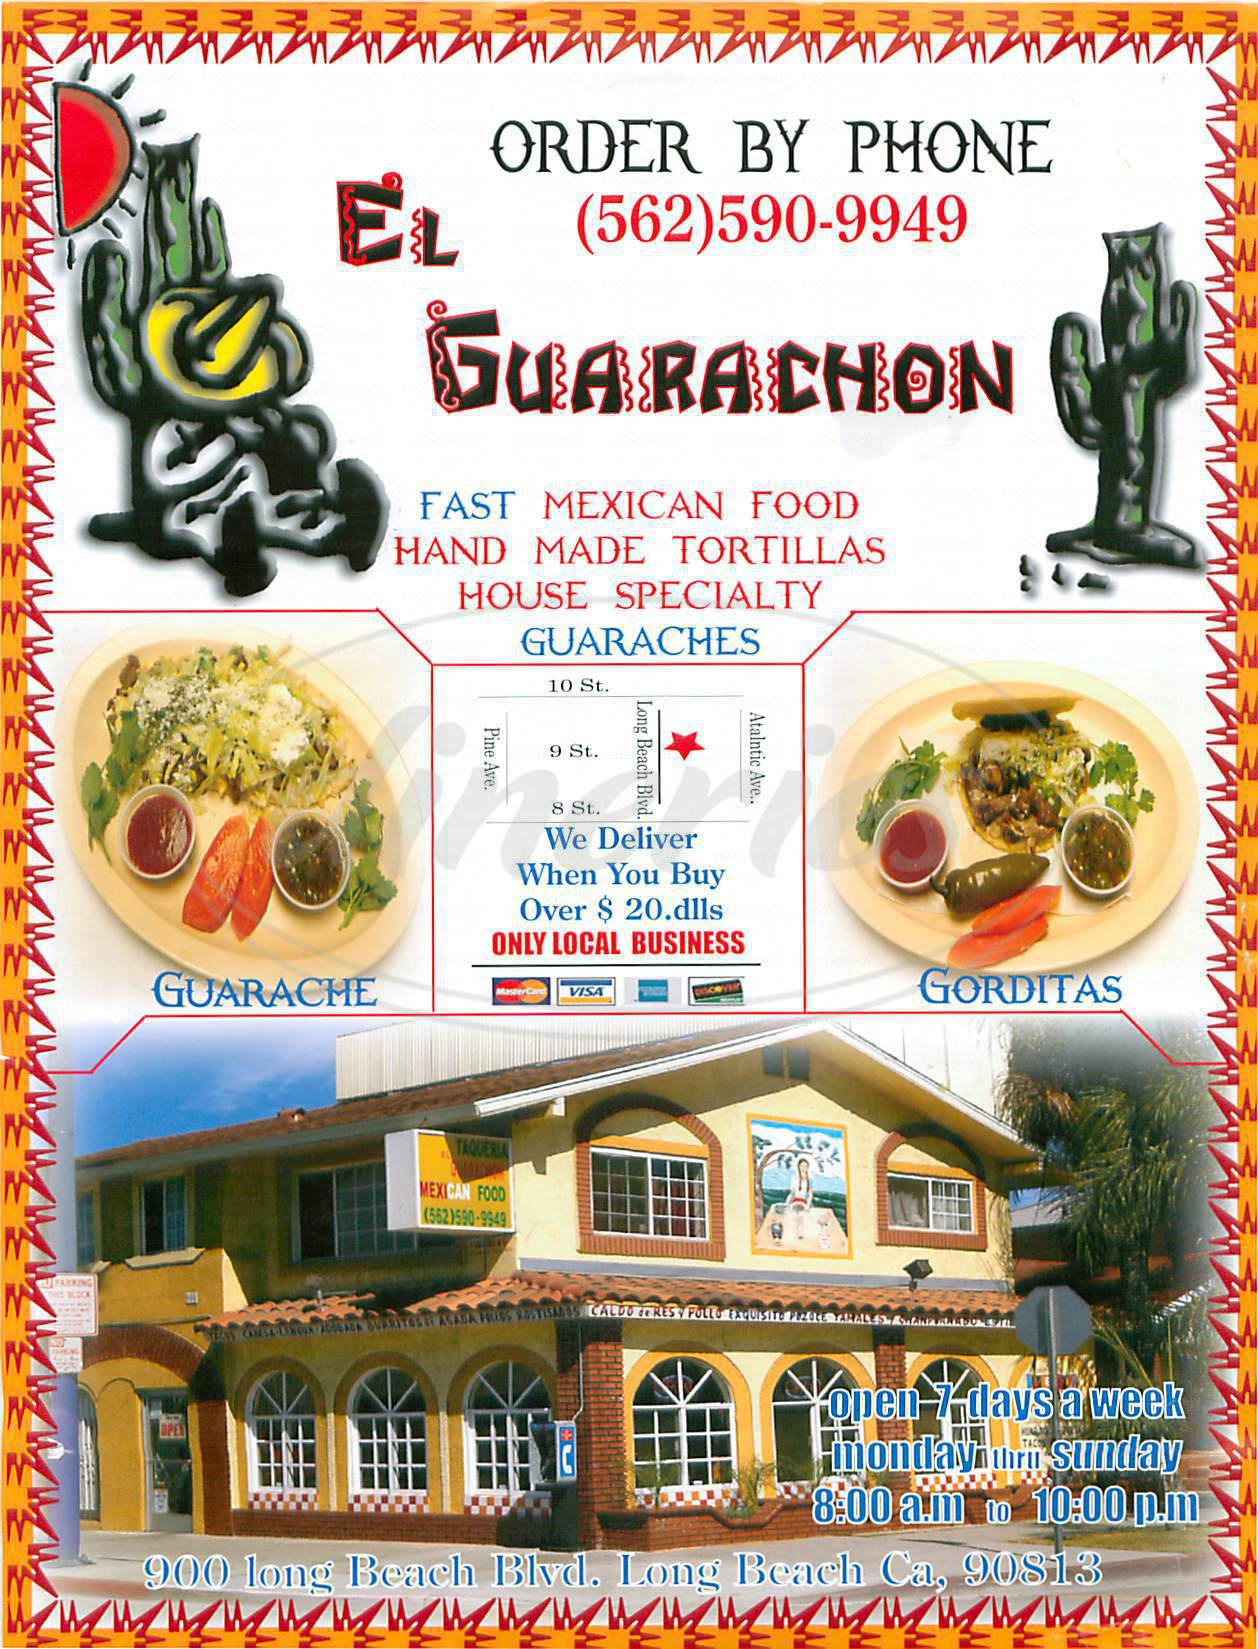 menu for Taqueria el Guarachon